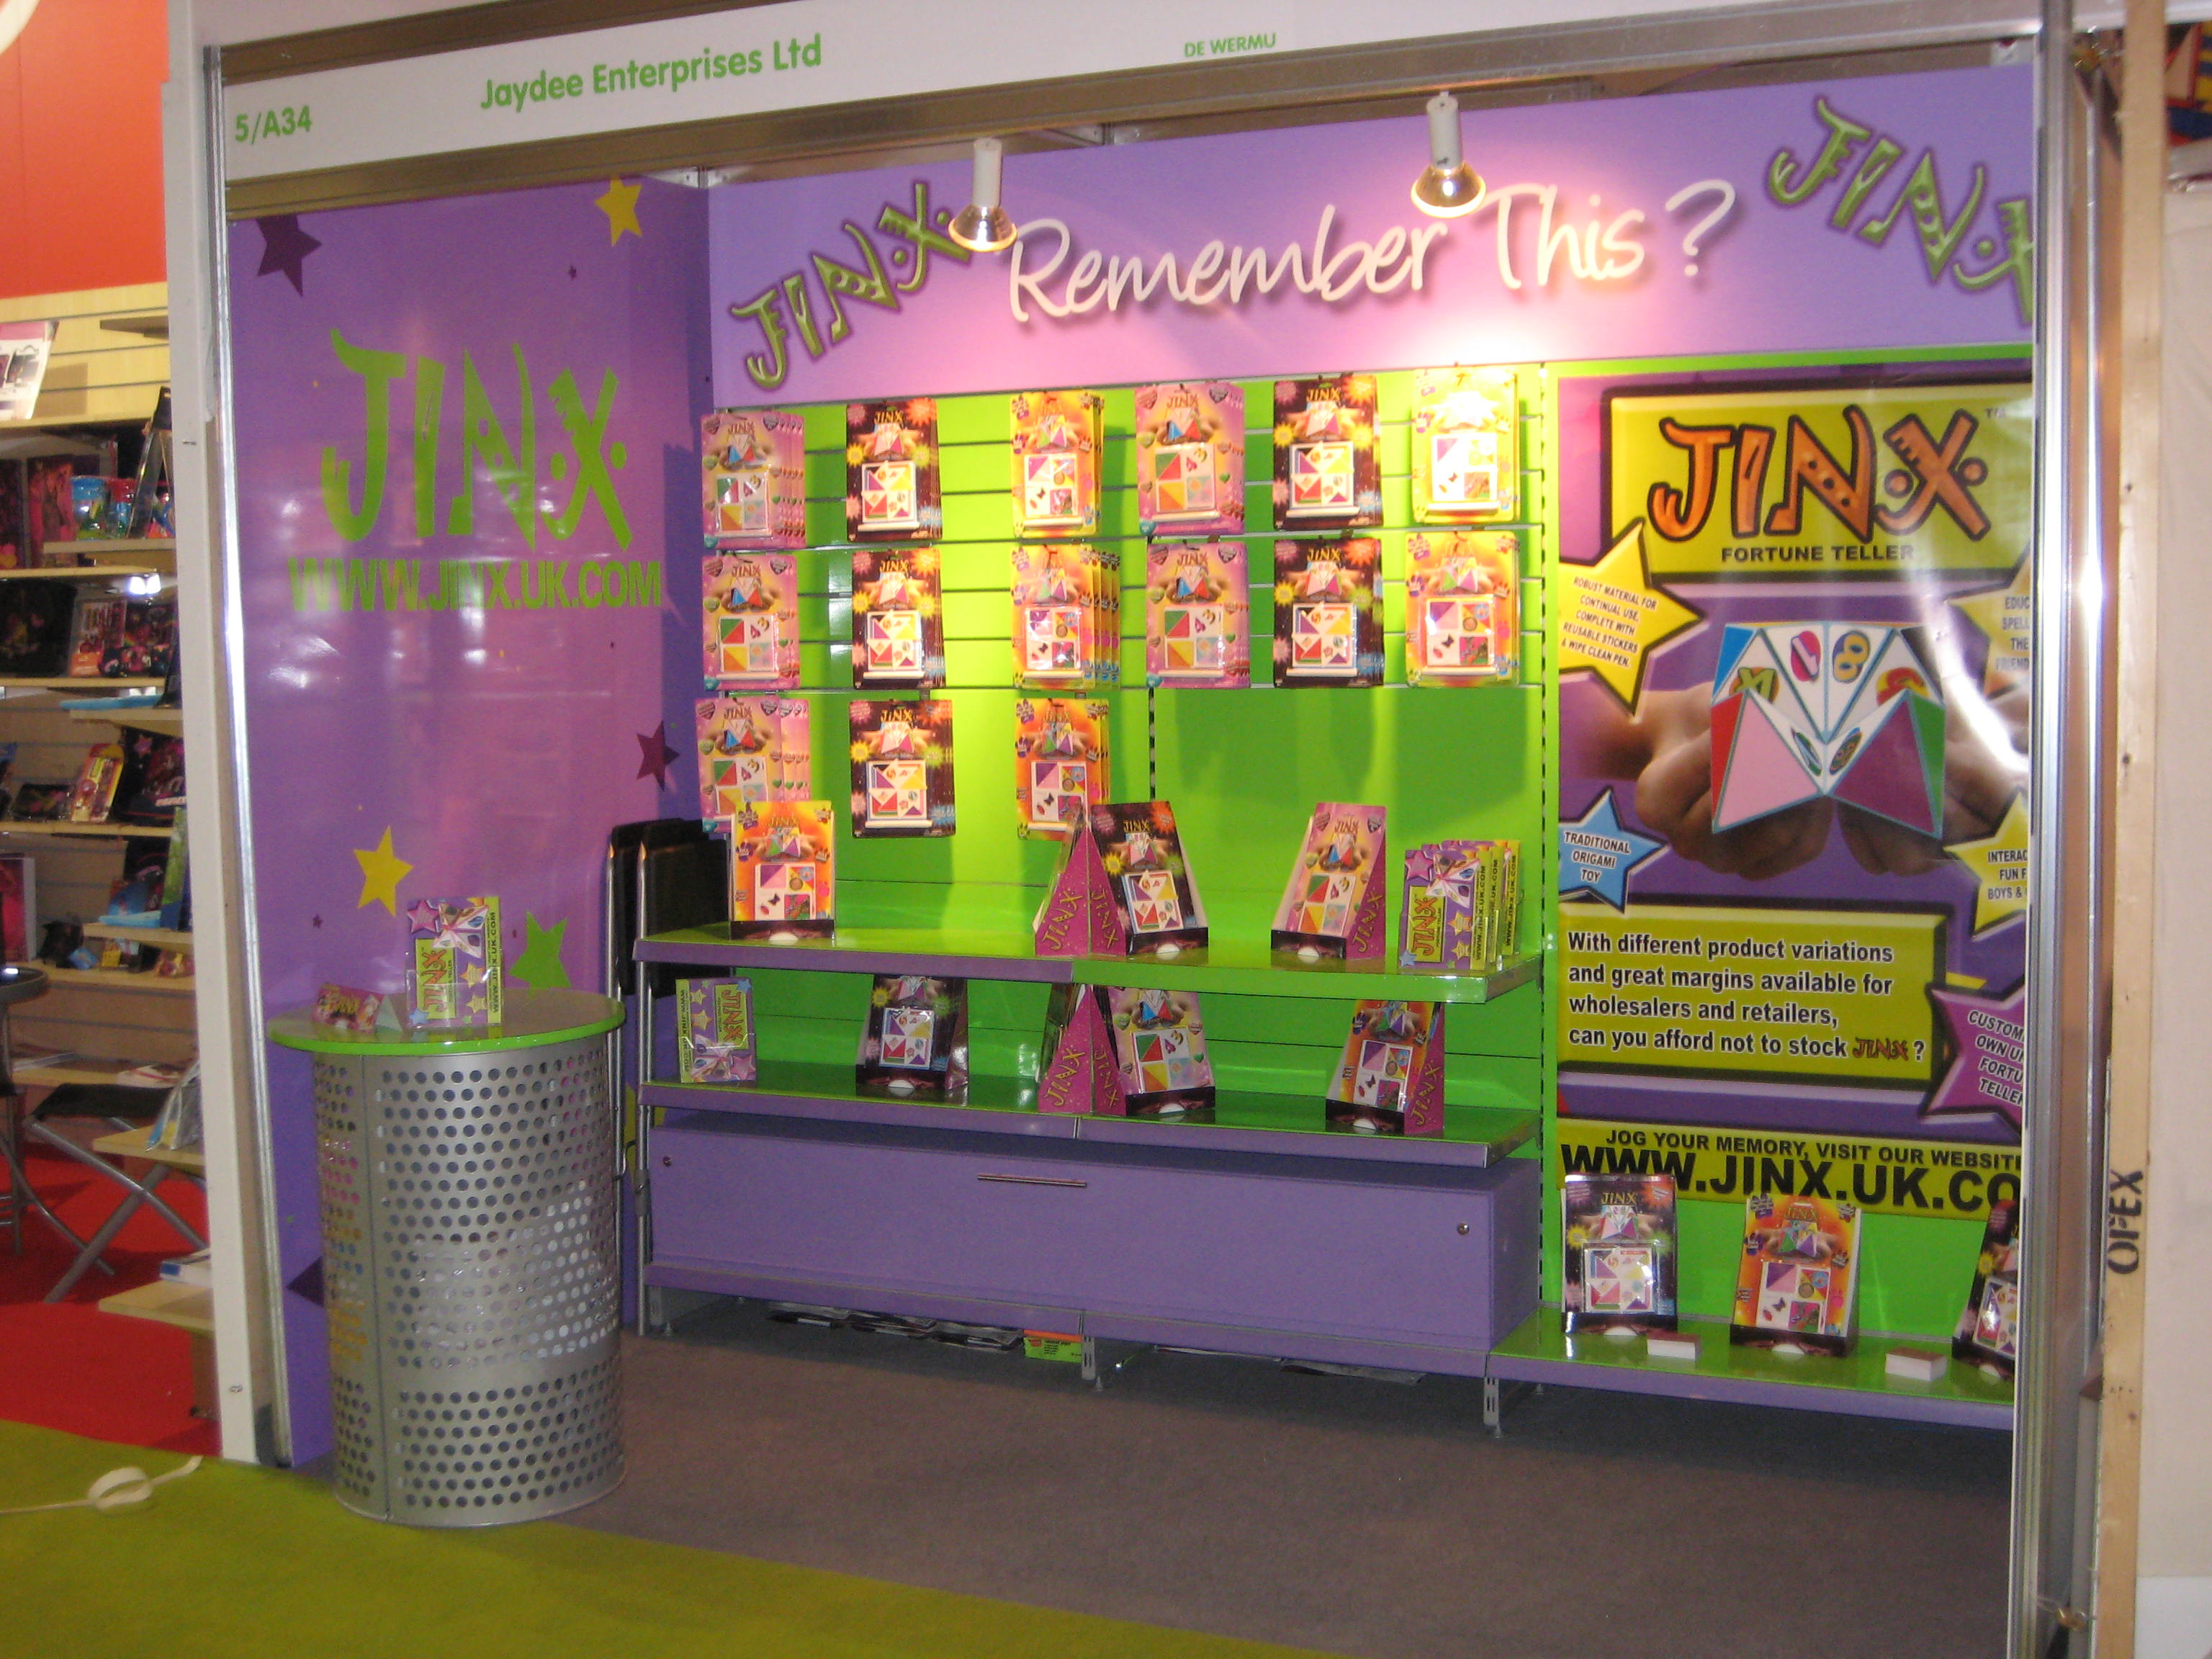 Marketing Exhibition Stand List : Jinx mx signs and designs